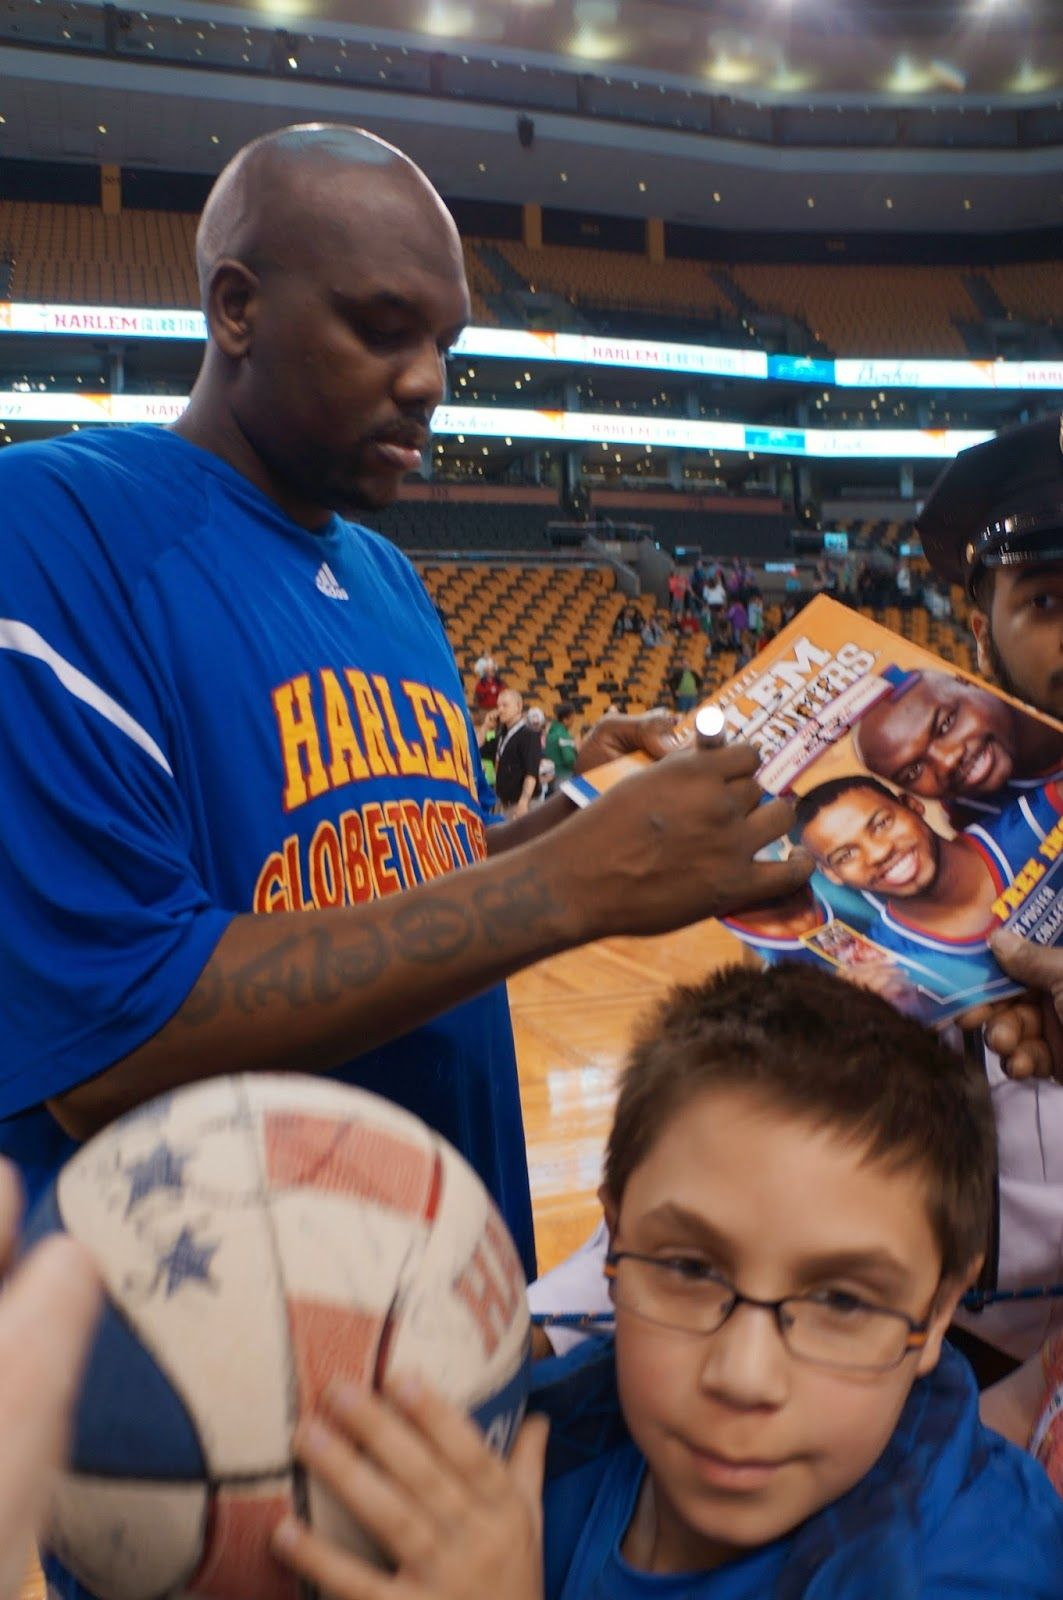 3/29/15 Harlem Globetrotters Fun at the TD Garden Boston